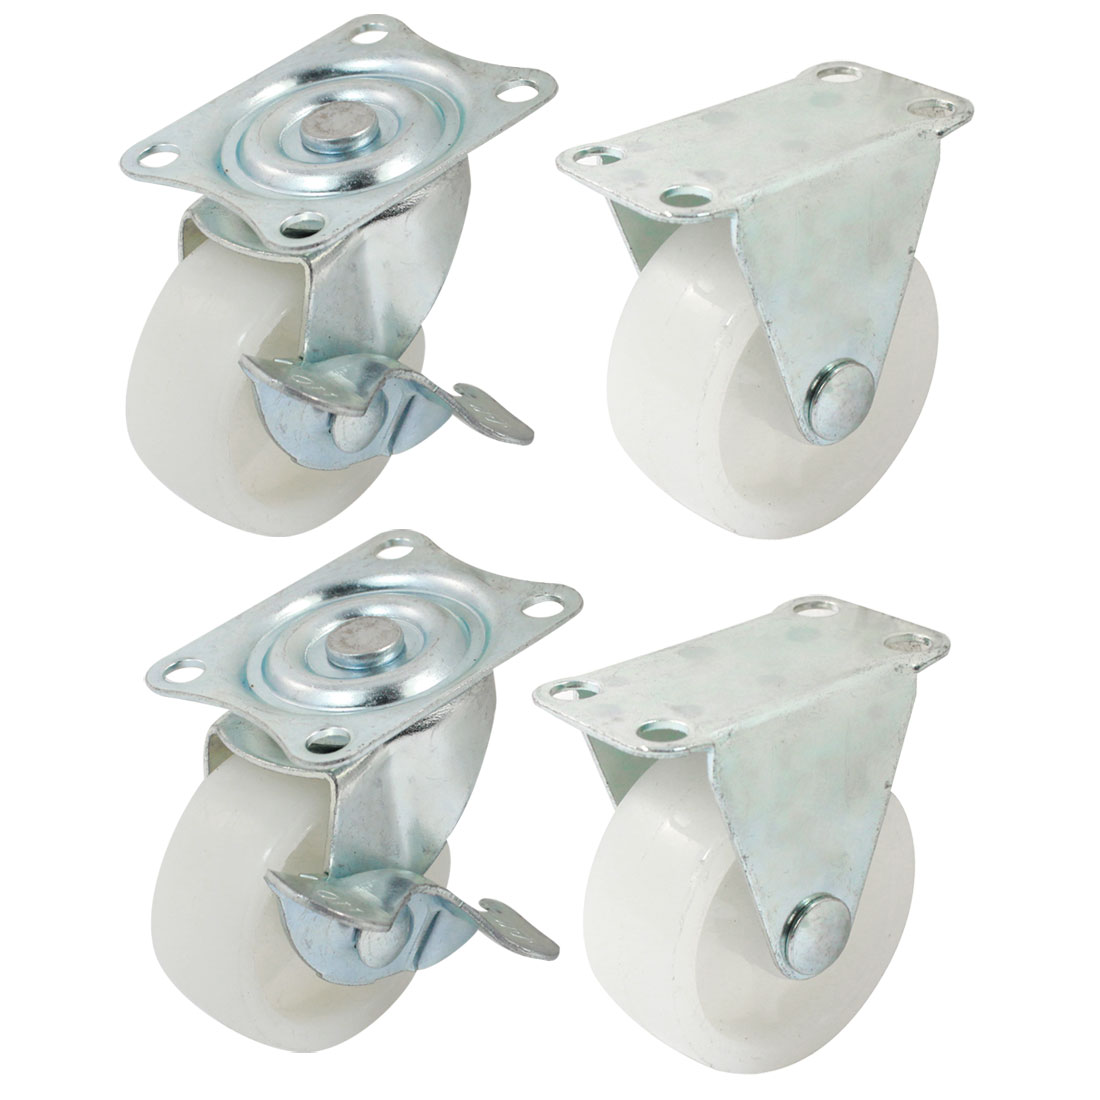 "Furniture Trolley 1.5"" Round Single Wheel Rectangle Top Plate 360 Degree Rotation Swivel Brake Fixed Caster 4 in 1"